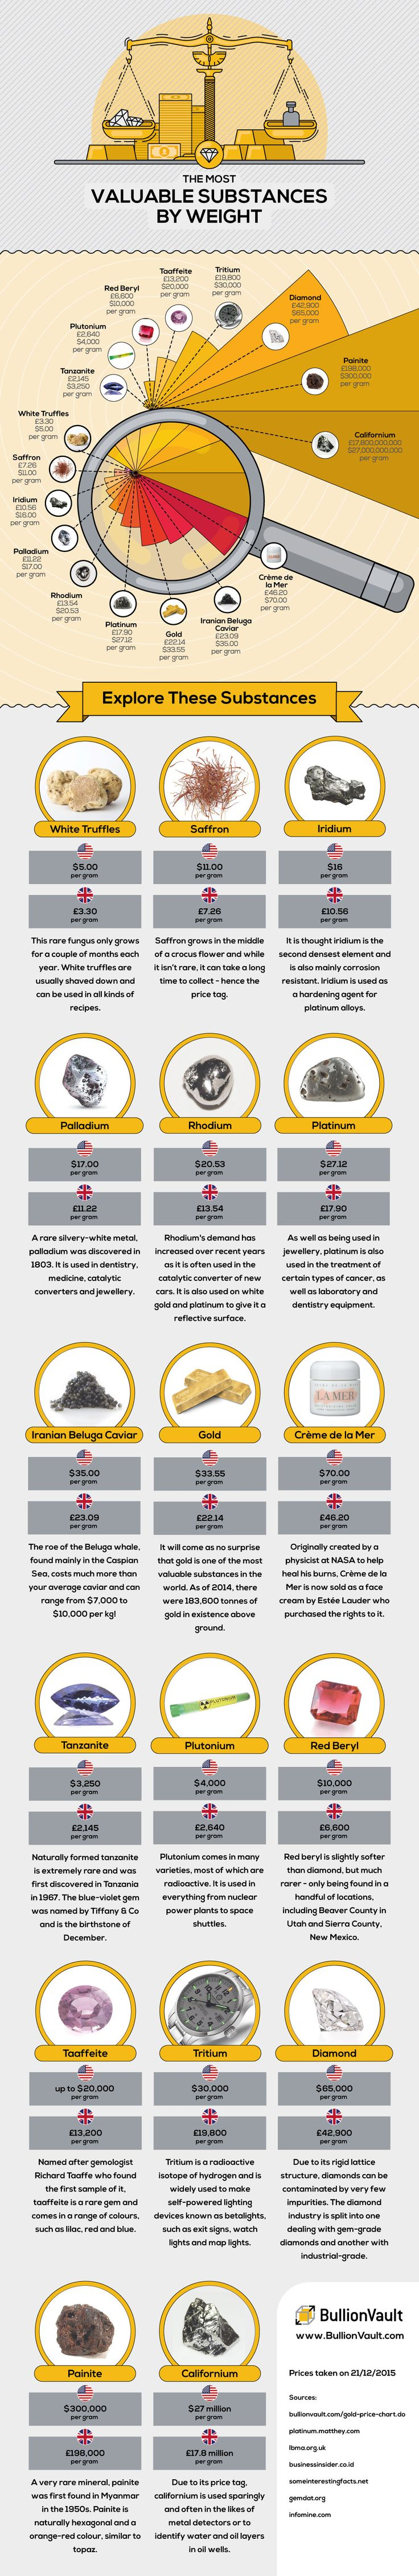 The Most Valuable Substances by Weight #Infographic